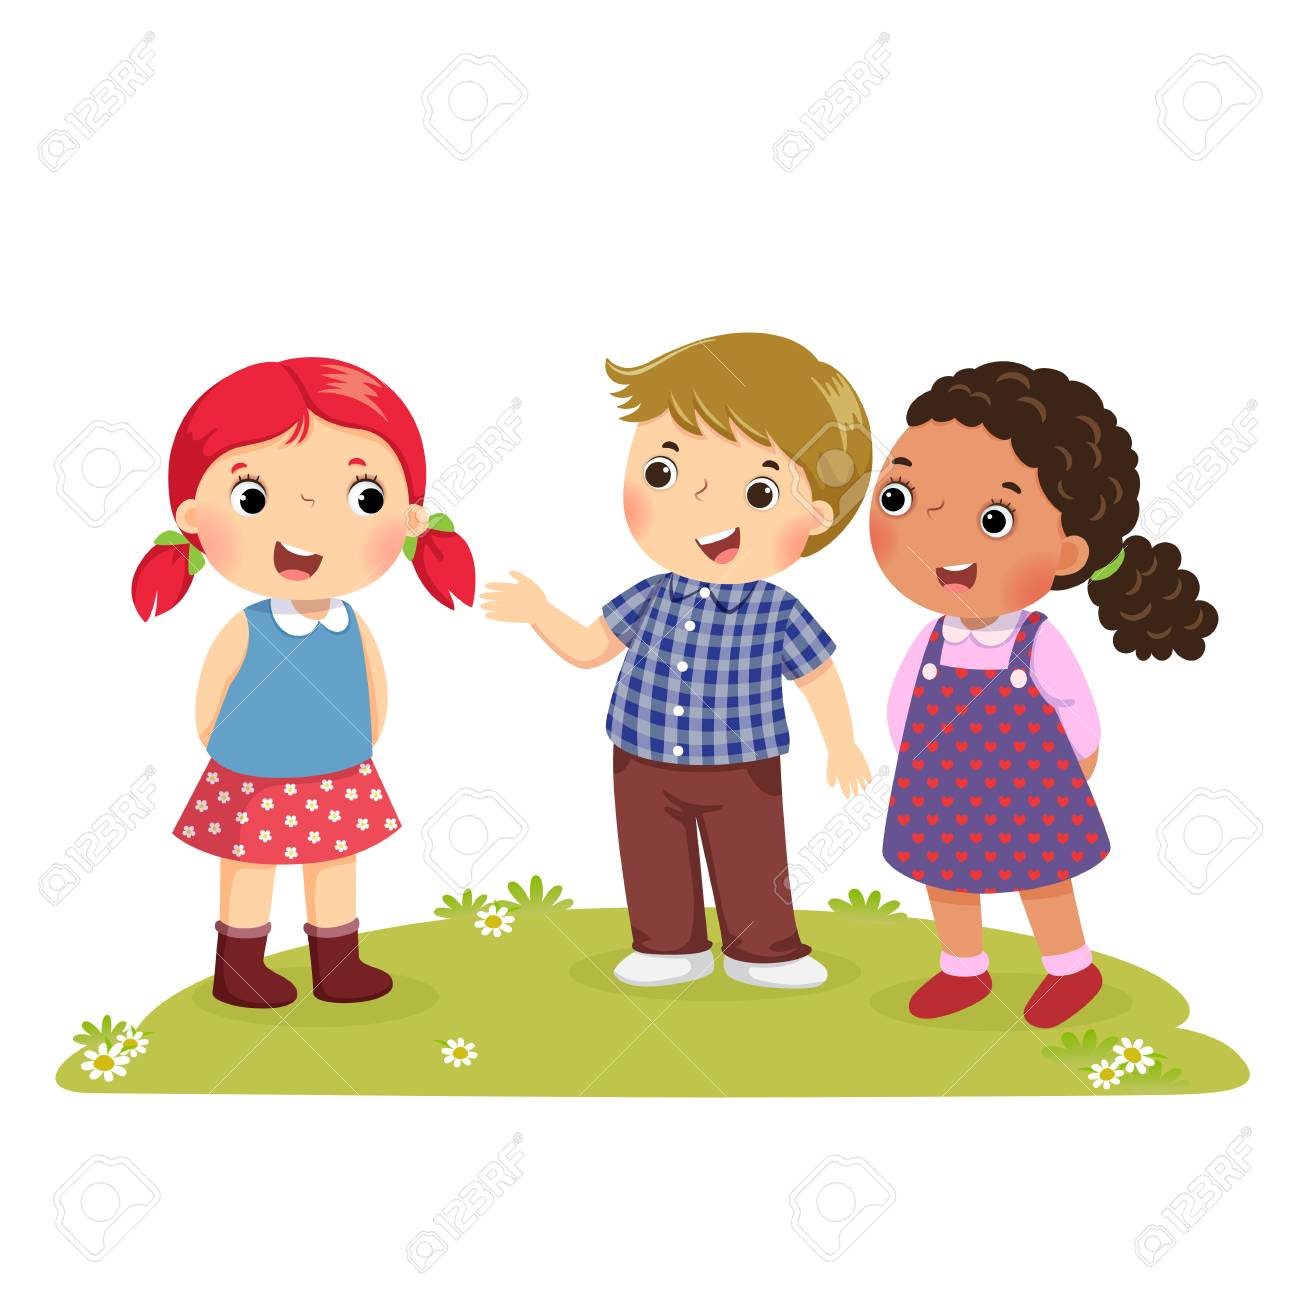 Illustration of a boy Introducing his friend to the girl - 94427879